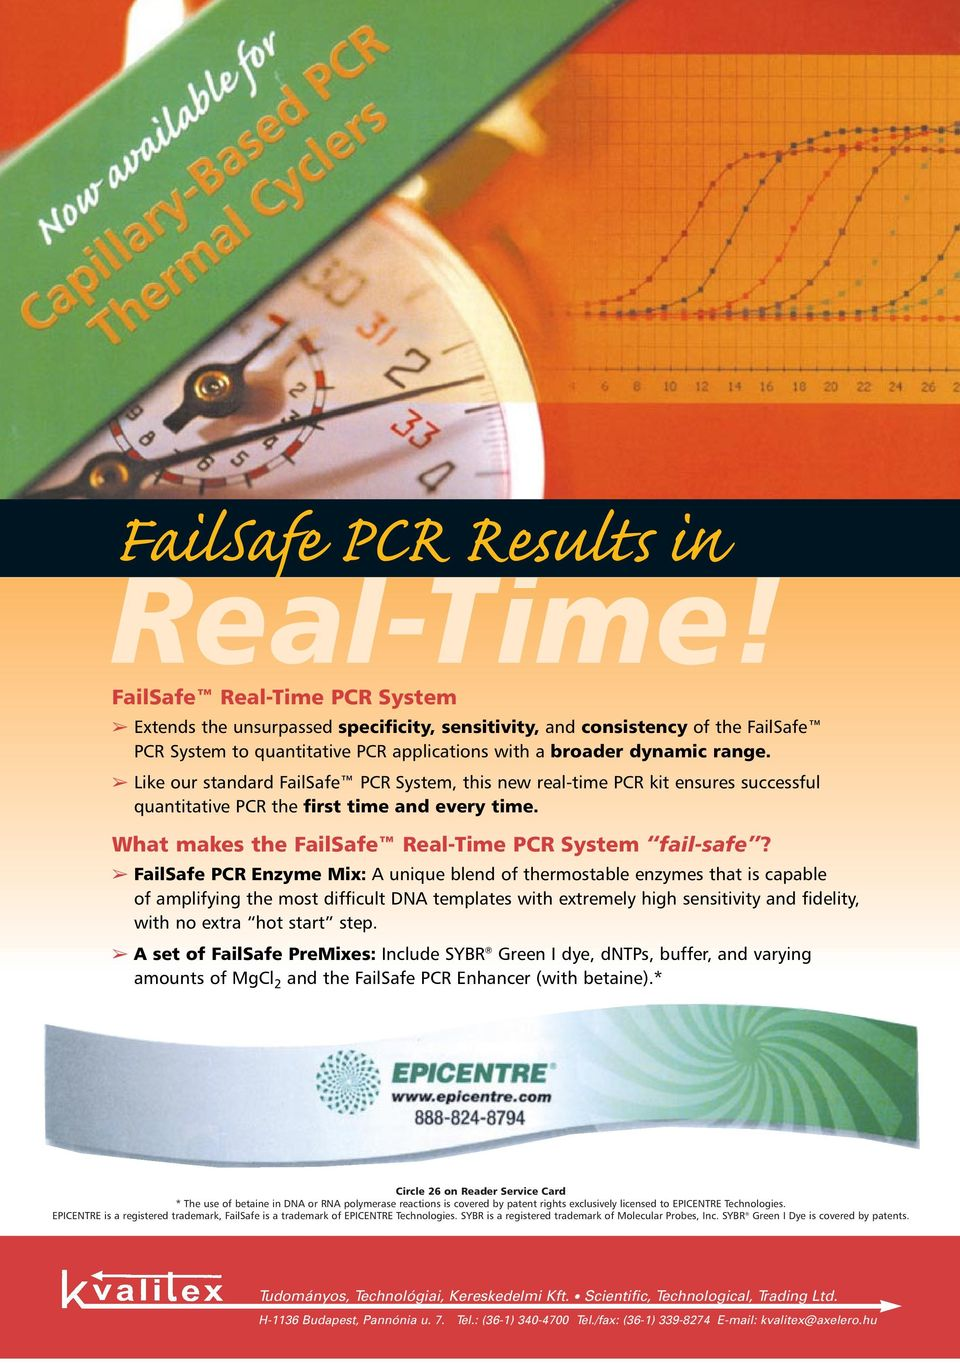 FailSafe PCR Enzyme Mix: A unique blend of thermostable enzymes that is capable of amplifying the most difficult DNA templates with extremely high sensitivity and fidelity, with no extra hot start